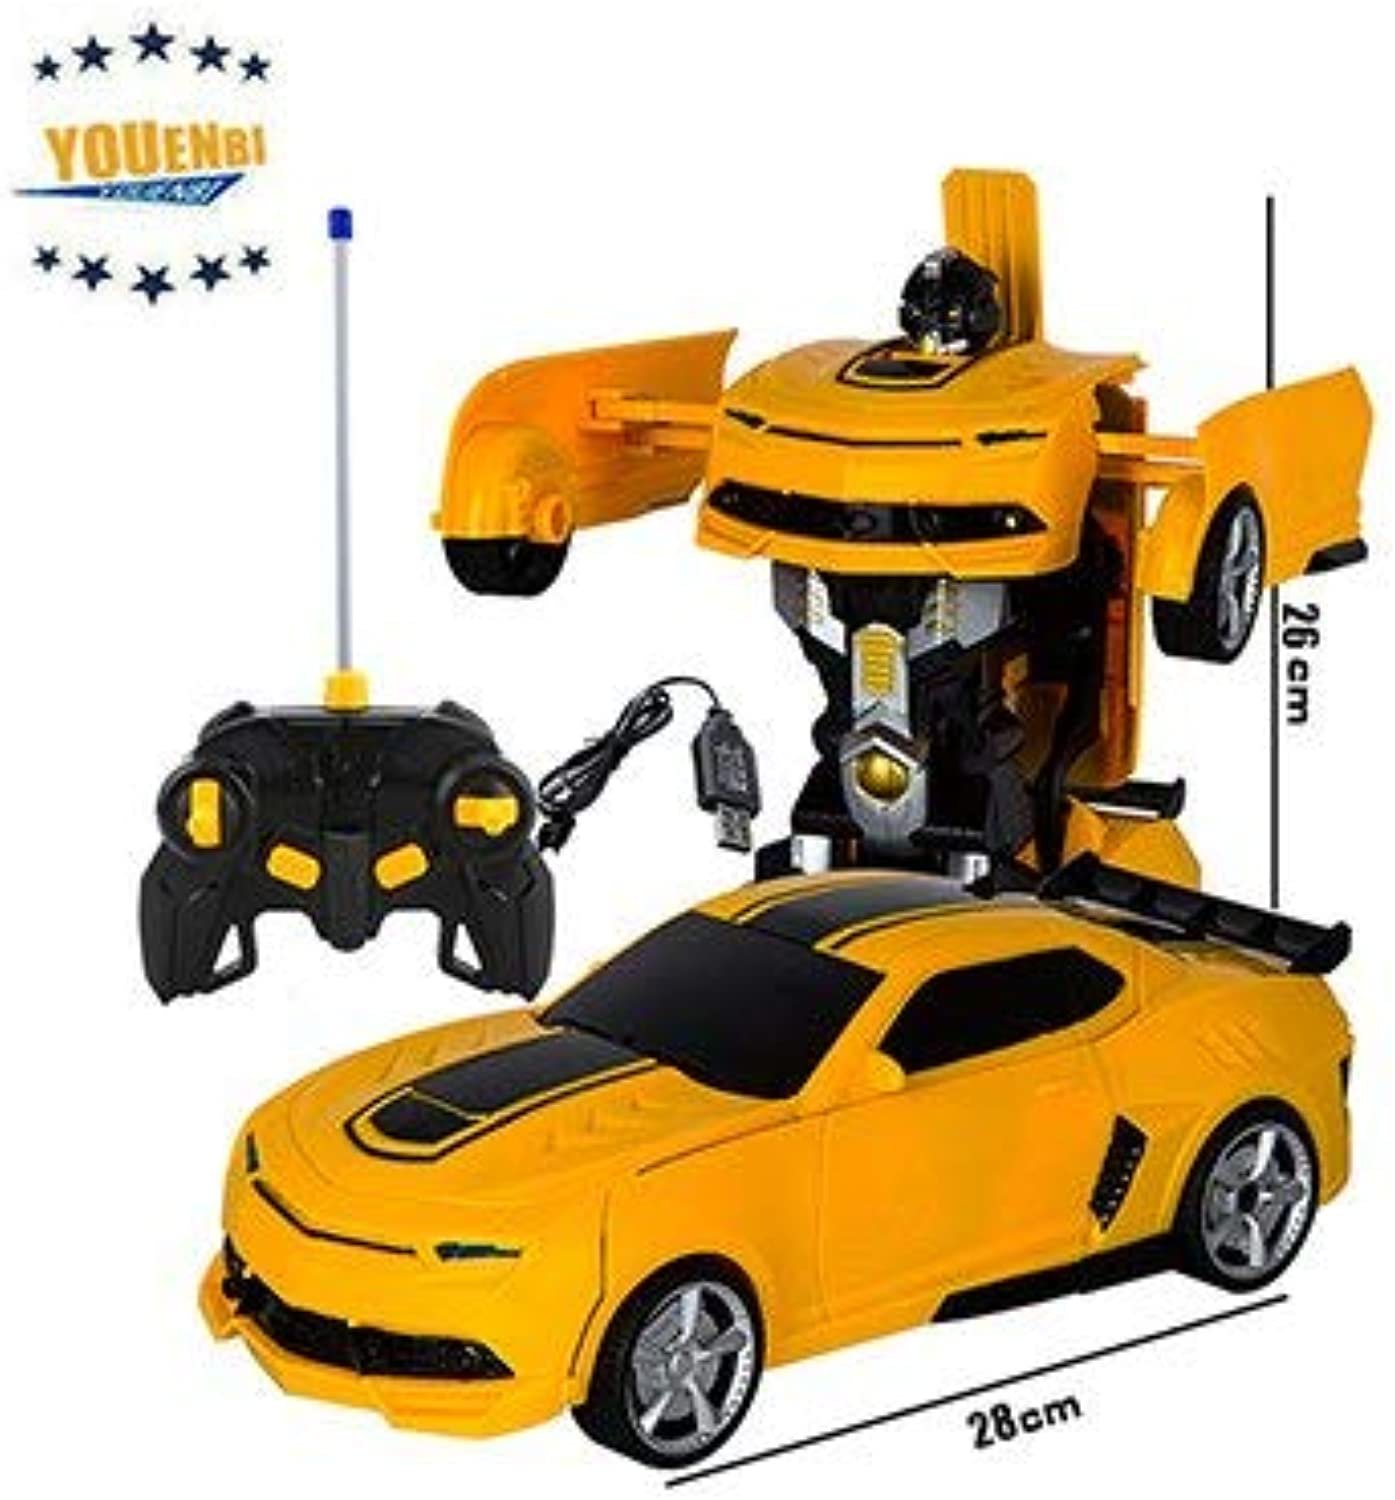 Generic Remote Control Car with Light and Sound Radio Control Toys for Kids 1 14 Gesture Sensor Robot Toys rc Car Yellow